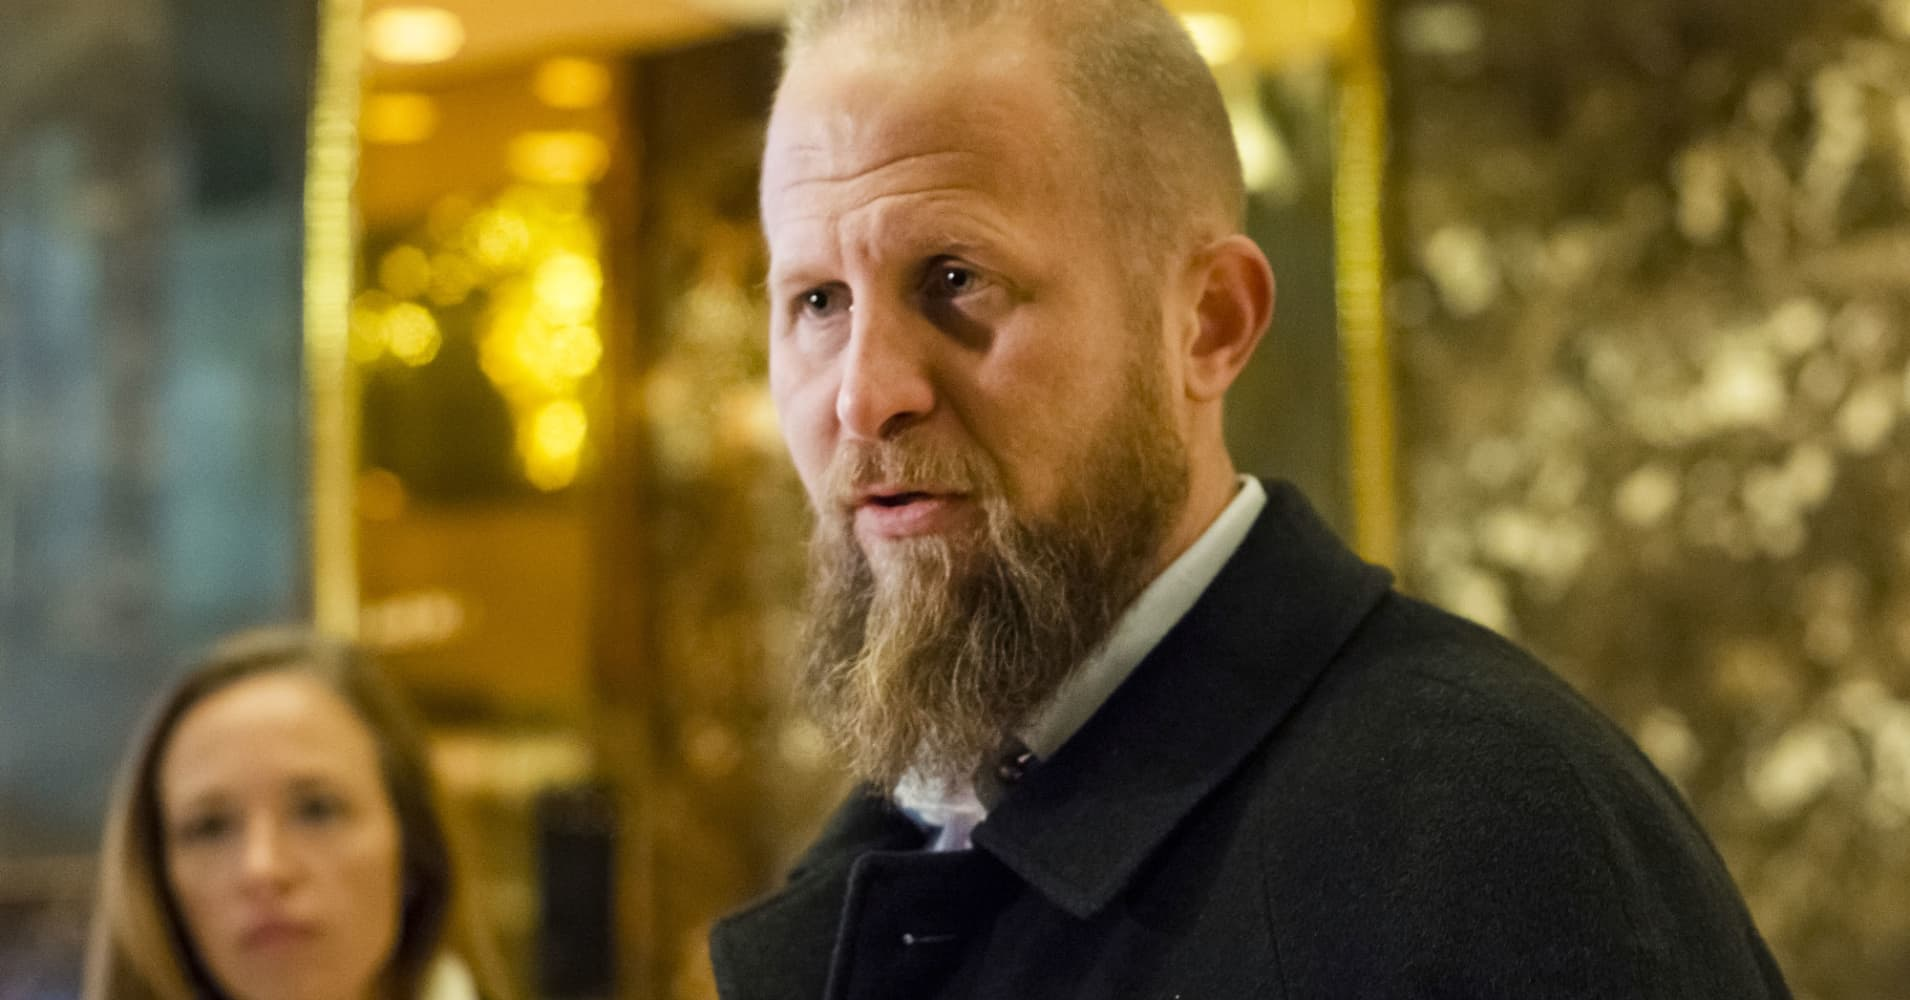 Trump's 2020 campaign manager attacks tech's 'Palo Alto mafia' for allegedly censoring conservatives